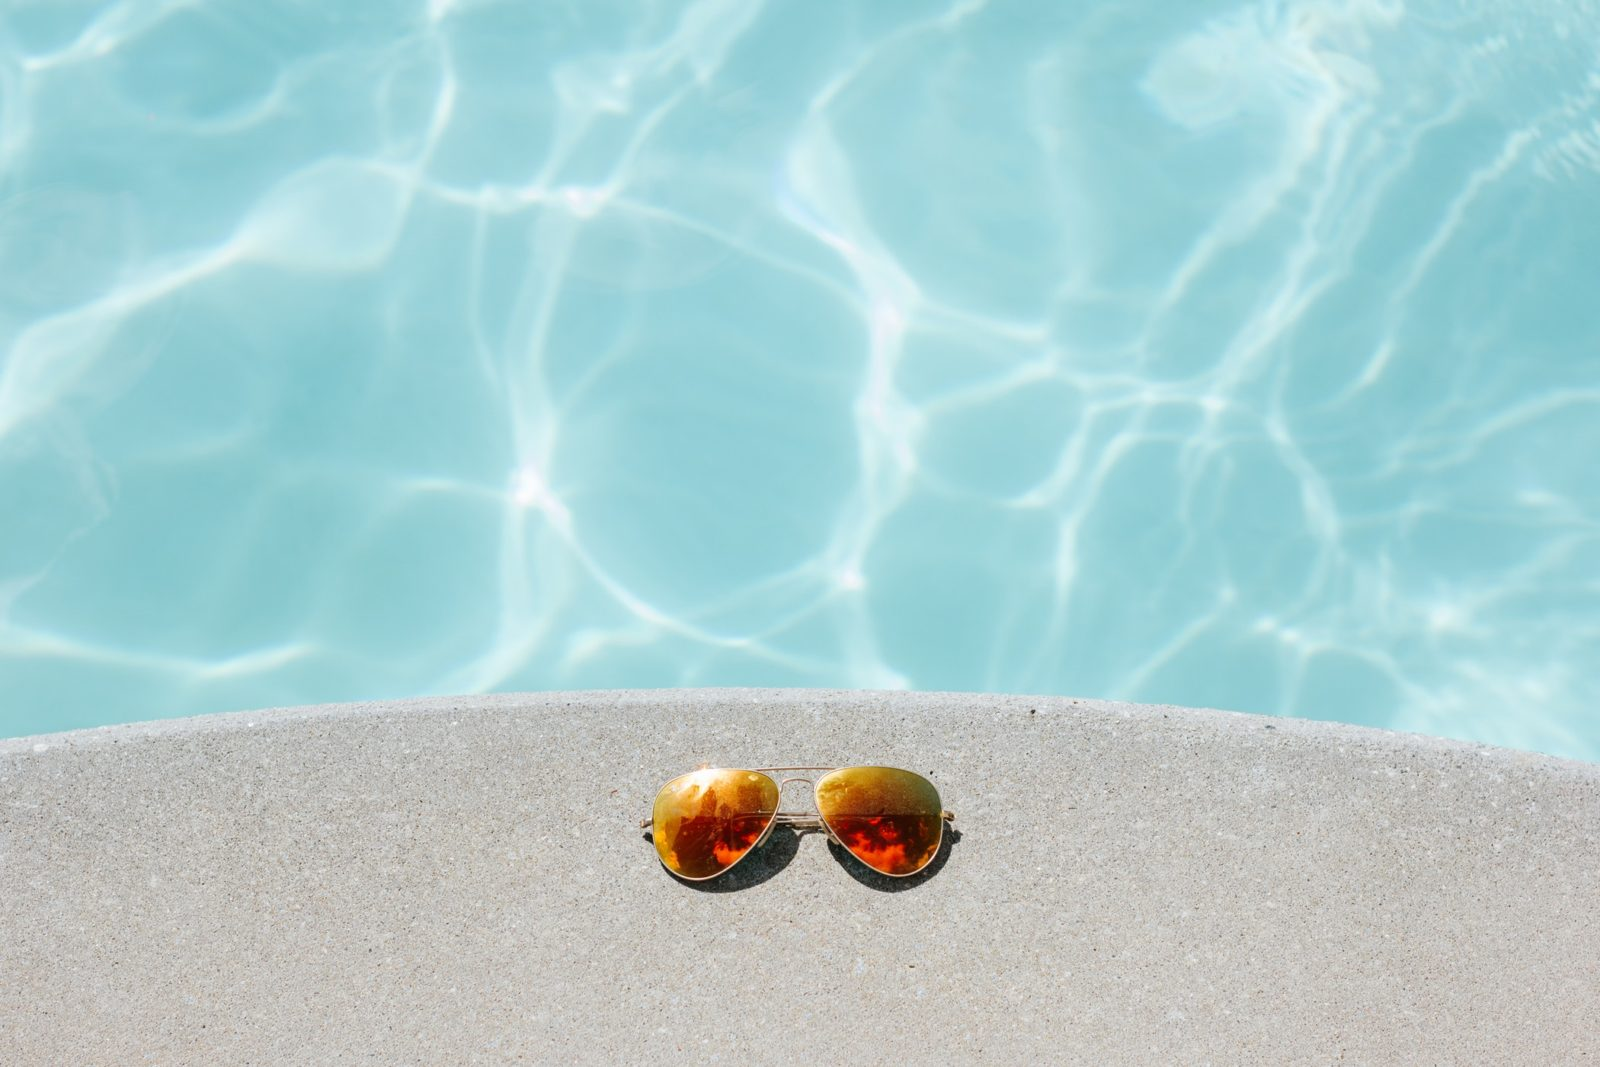 Sun glasses next to swimming pool